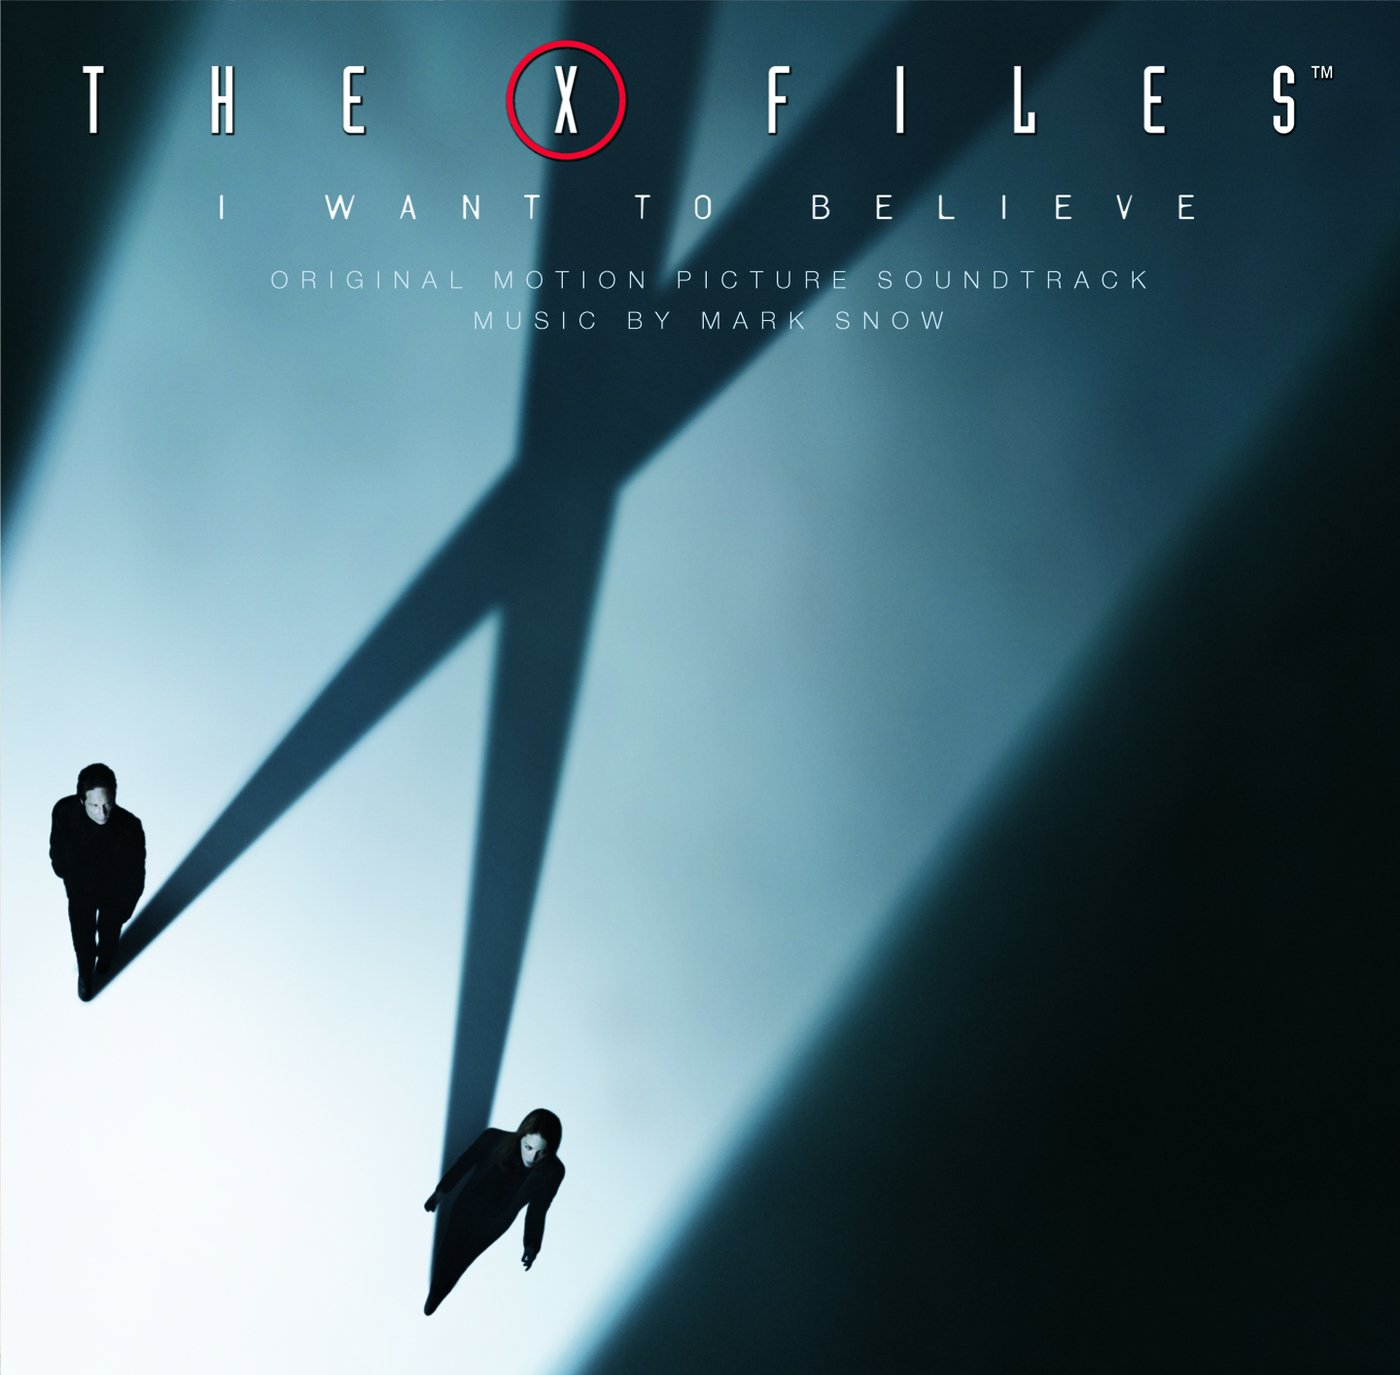 bande originale soundtrack ost score x-files regeneration want believe disney fox